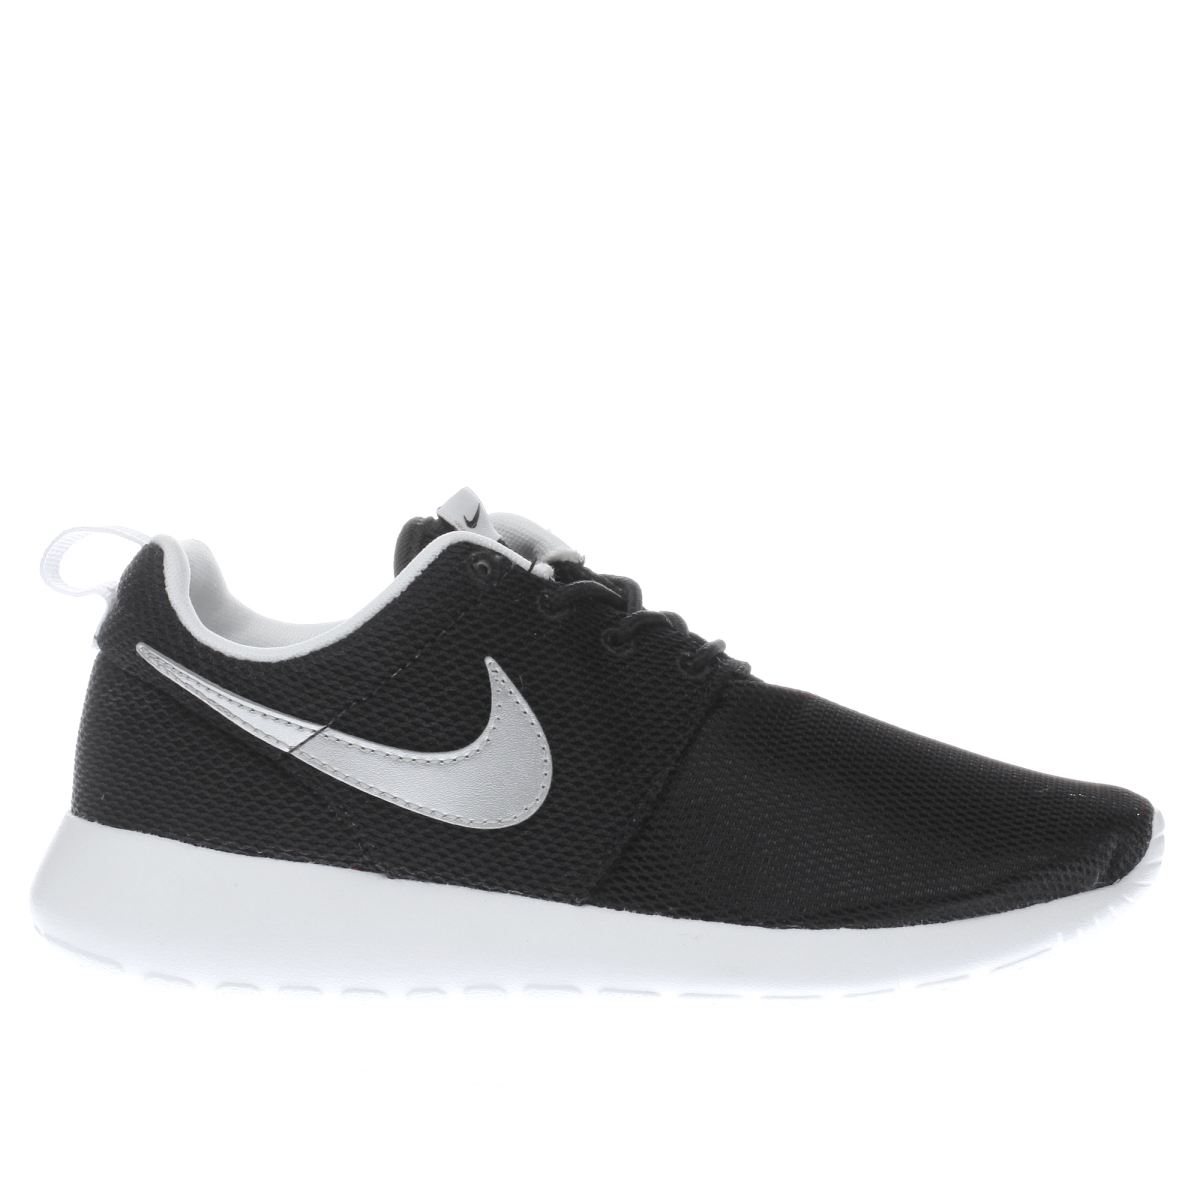 save off f147a 8905a Nike Roshe Run Trainers   Nike Shoes for Men, Women   Kids   schuh